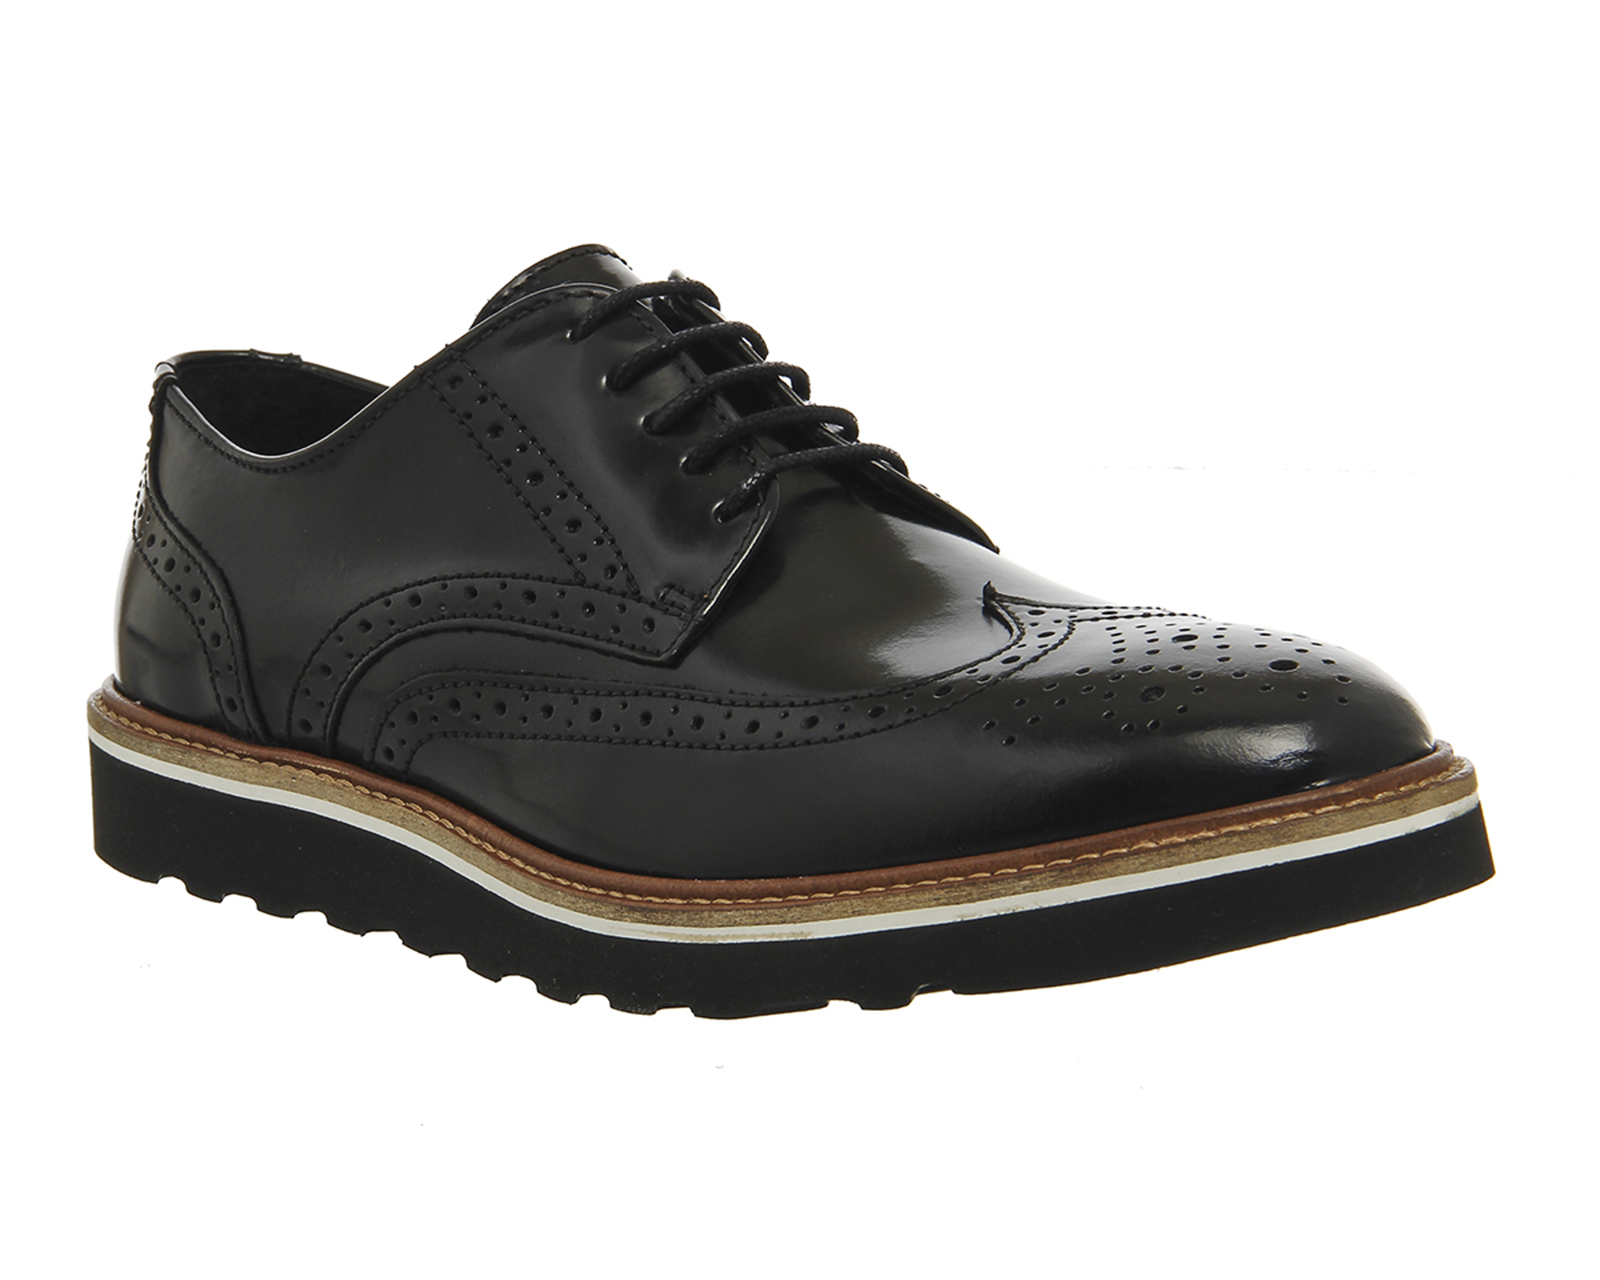 Mens Ask the Missus Coco Wedge Sole Brogues BLACK HI SHINE ...